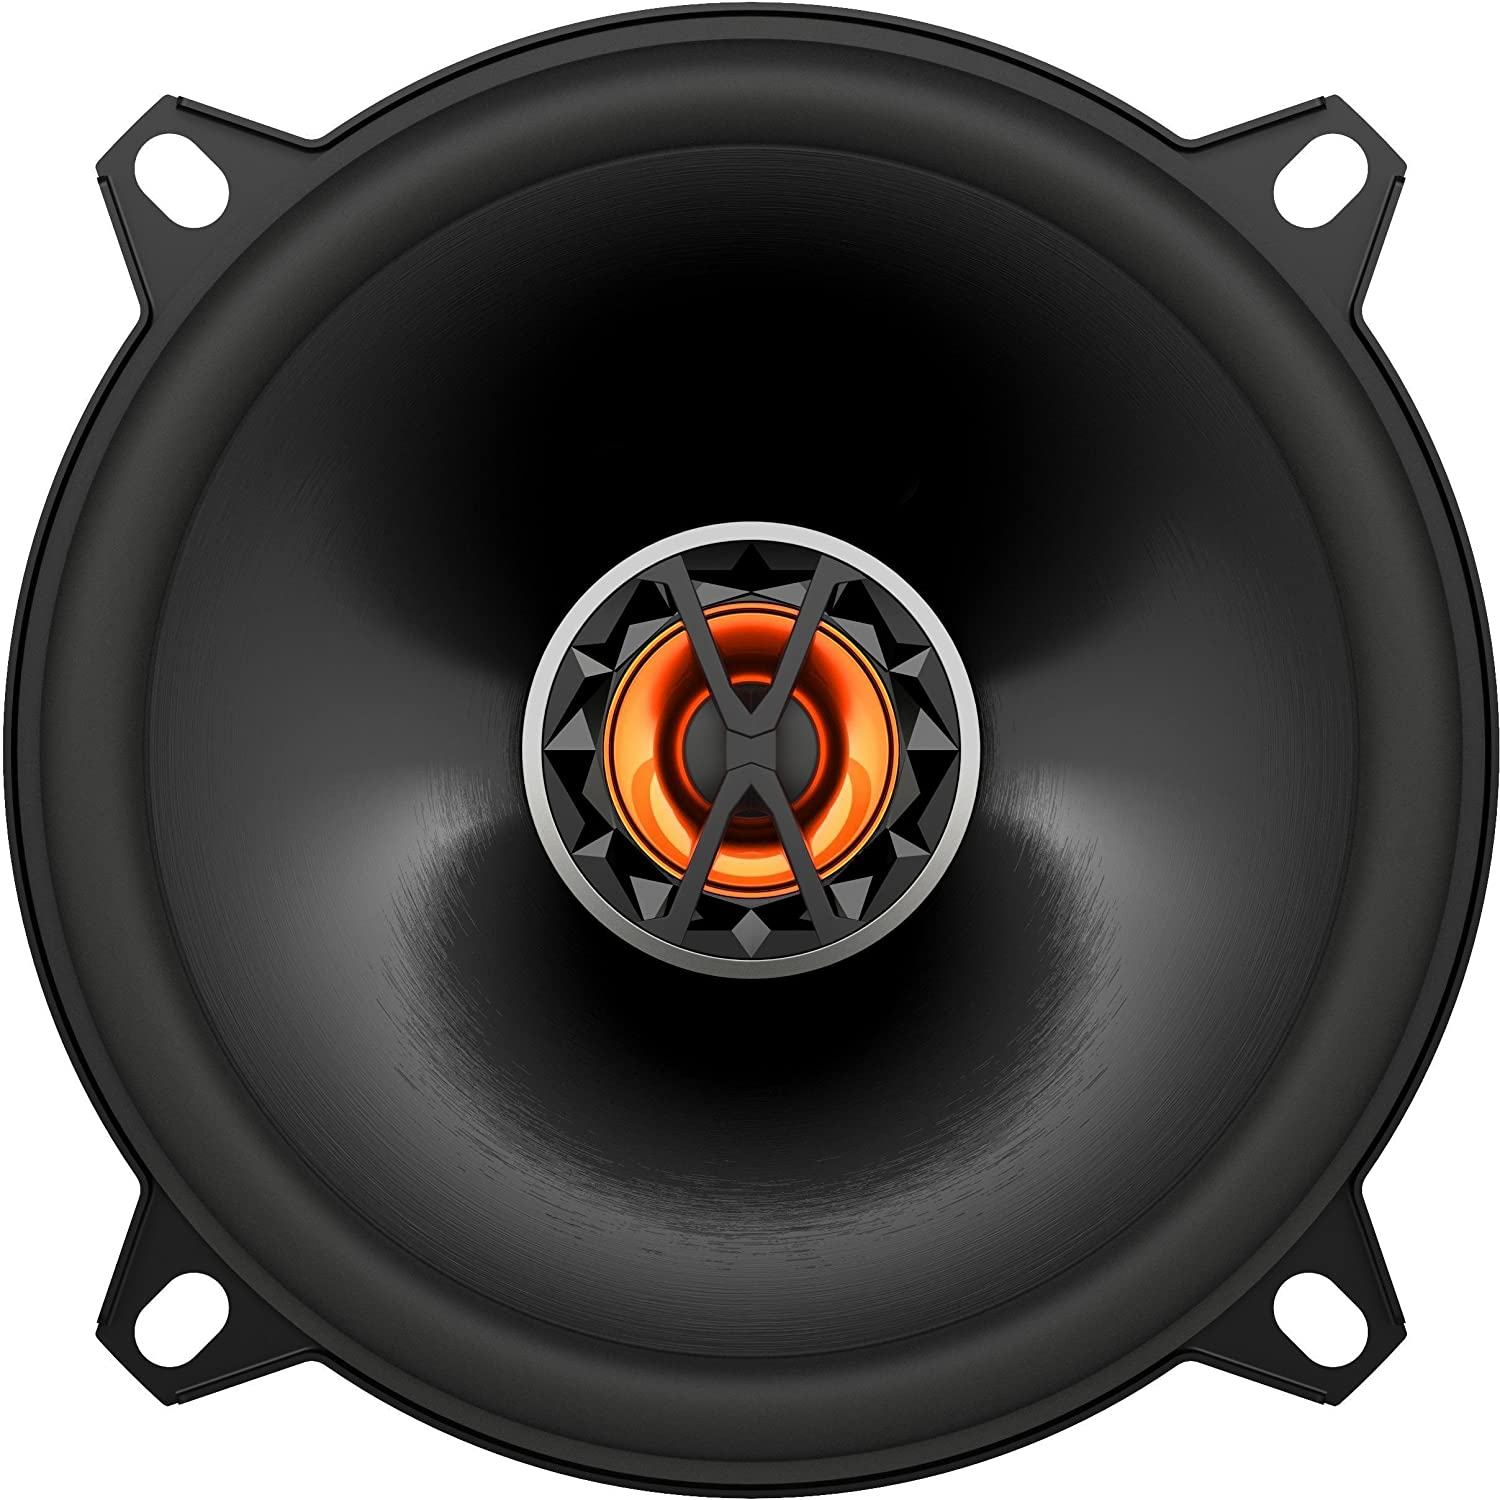 JBL Club 6520 - Altavoces coaxiales de automó vil (150 W RMS, 160 mm, membrana Plus One), color negro Harman Kardon